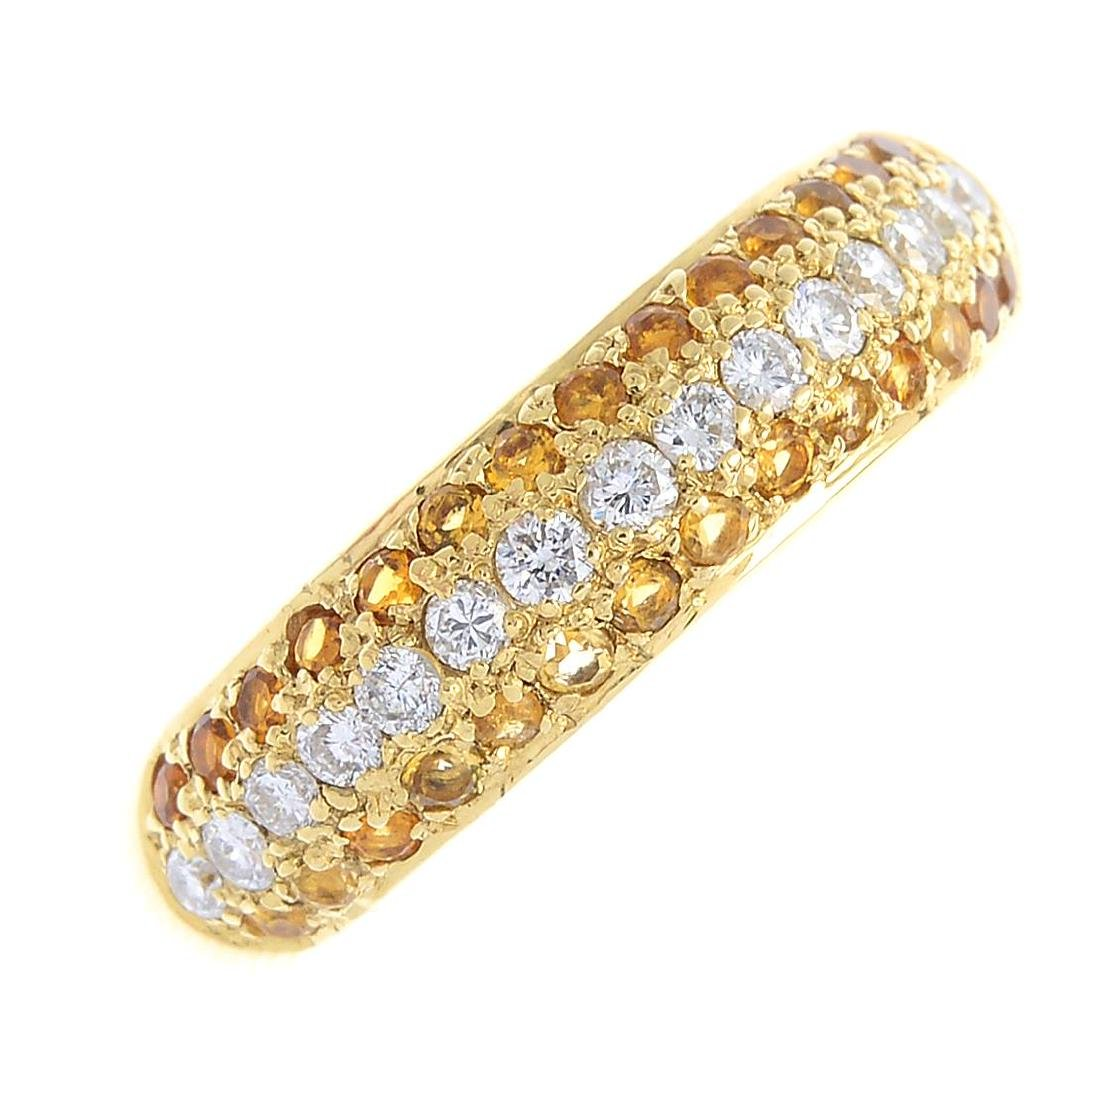 An 18ct gold diamond and citrine band ring. The